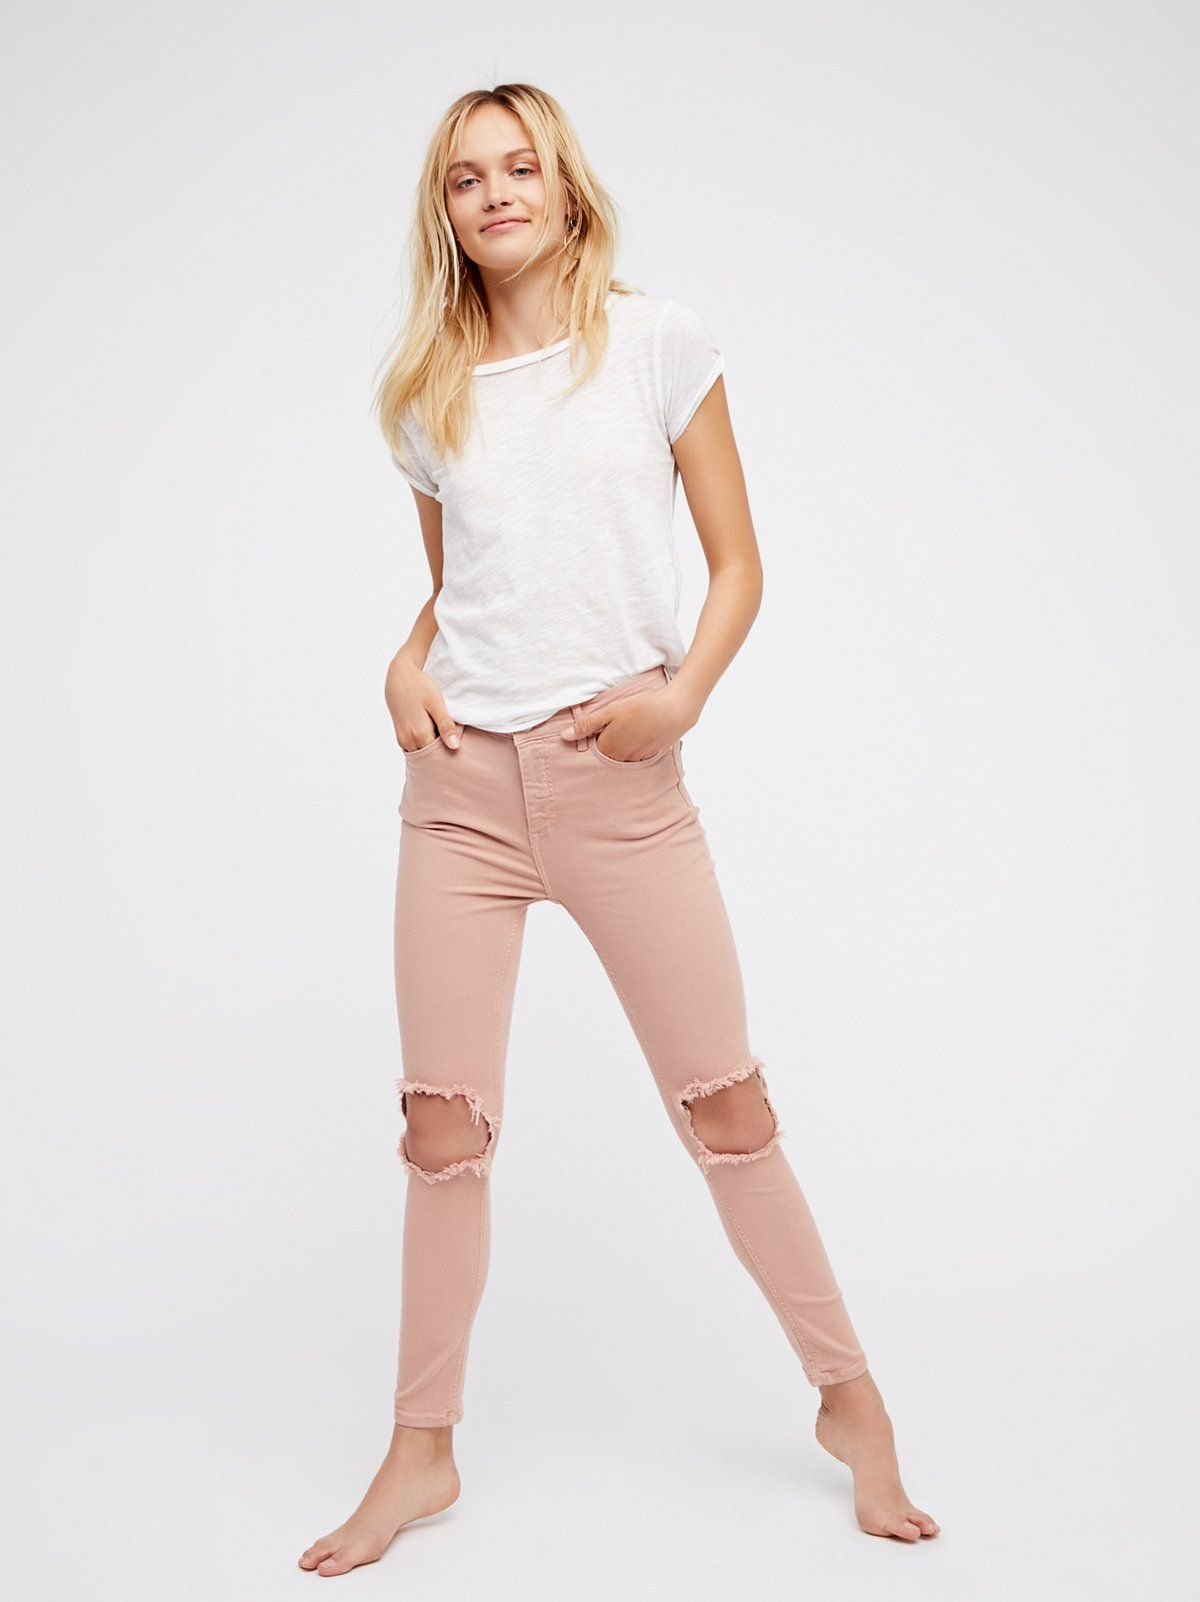 Skinny Pink jeans tumblr pictures recommend to wear for everyday in 2019